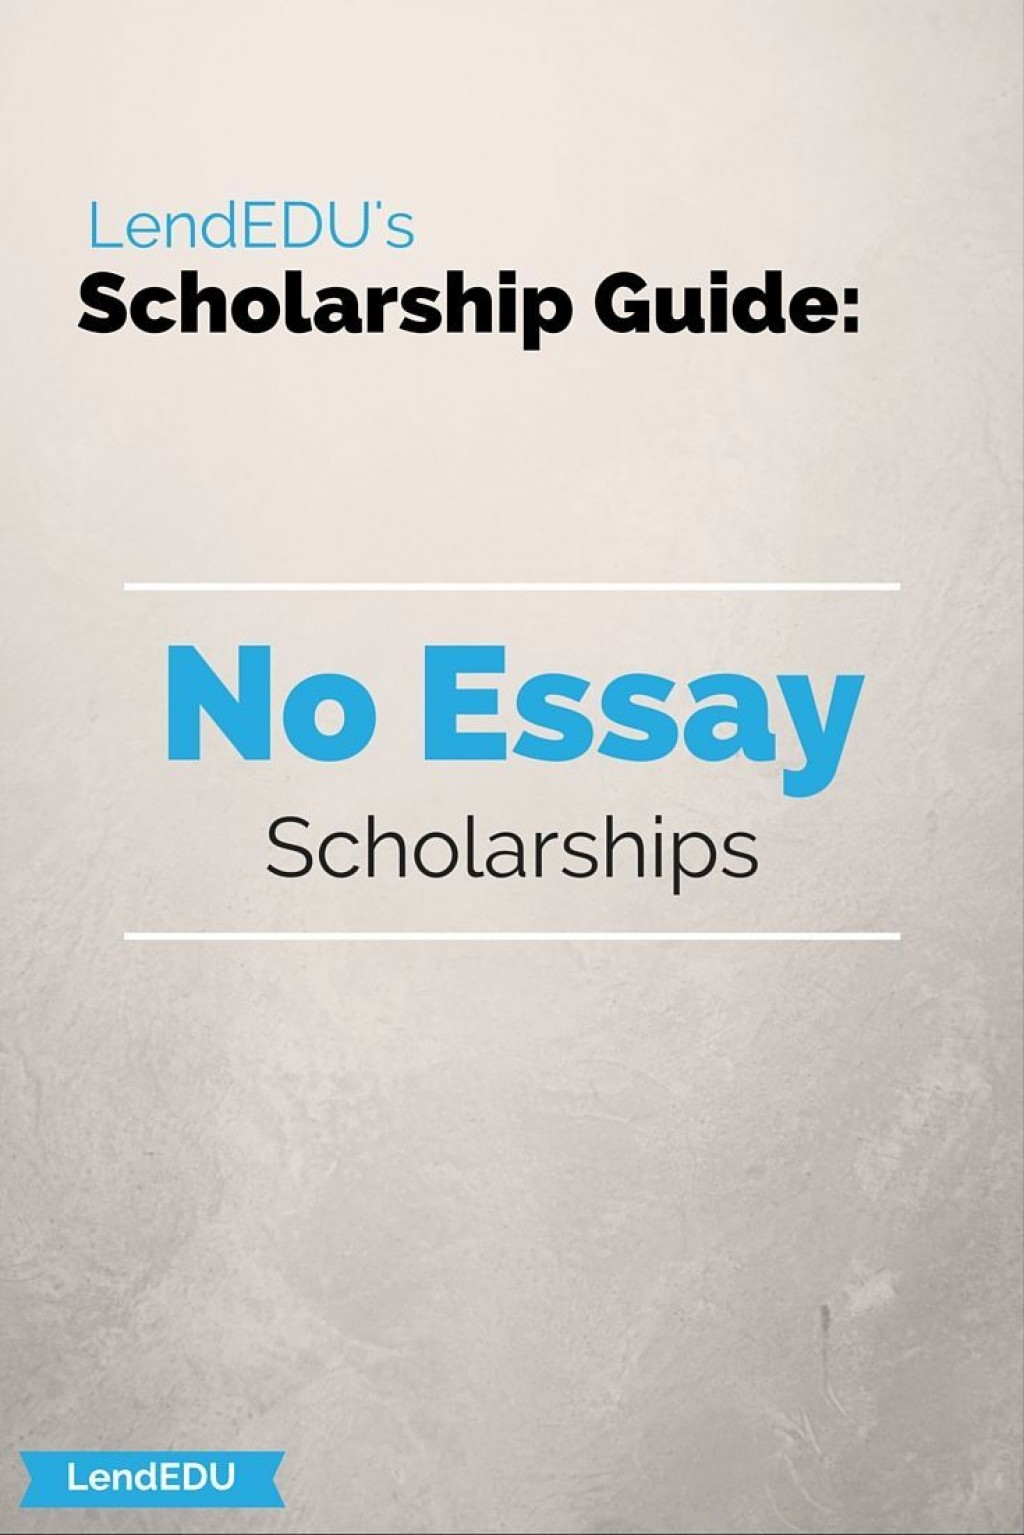 016 Essay Example No Scholarship Wondrous Scholarships For High School Seniors Niche Reddit Legit Large